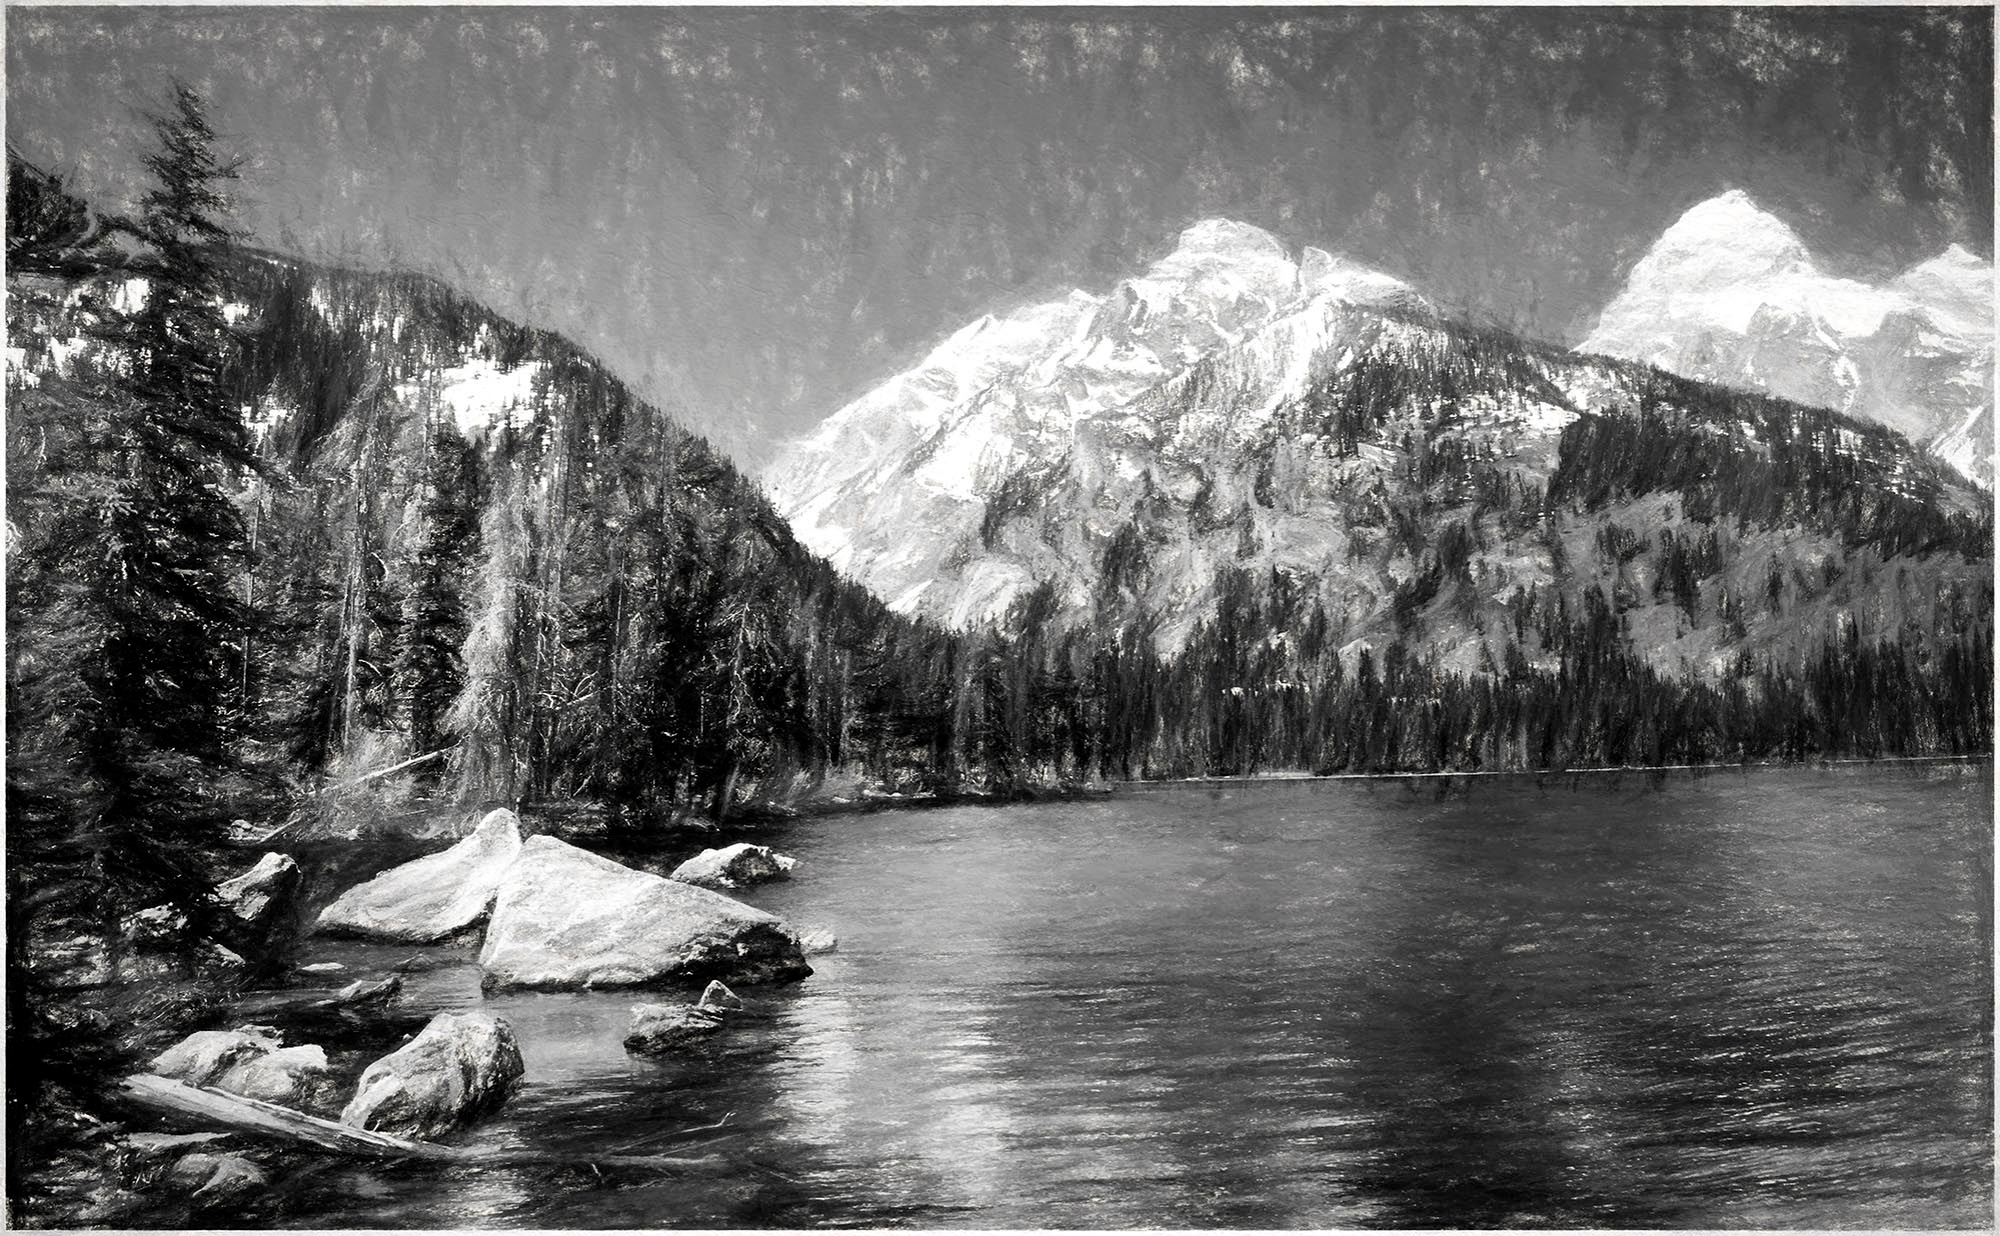 Jackson Hole - Lake in B & W by tedurquhart1